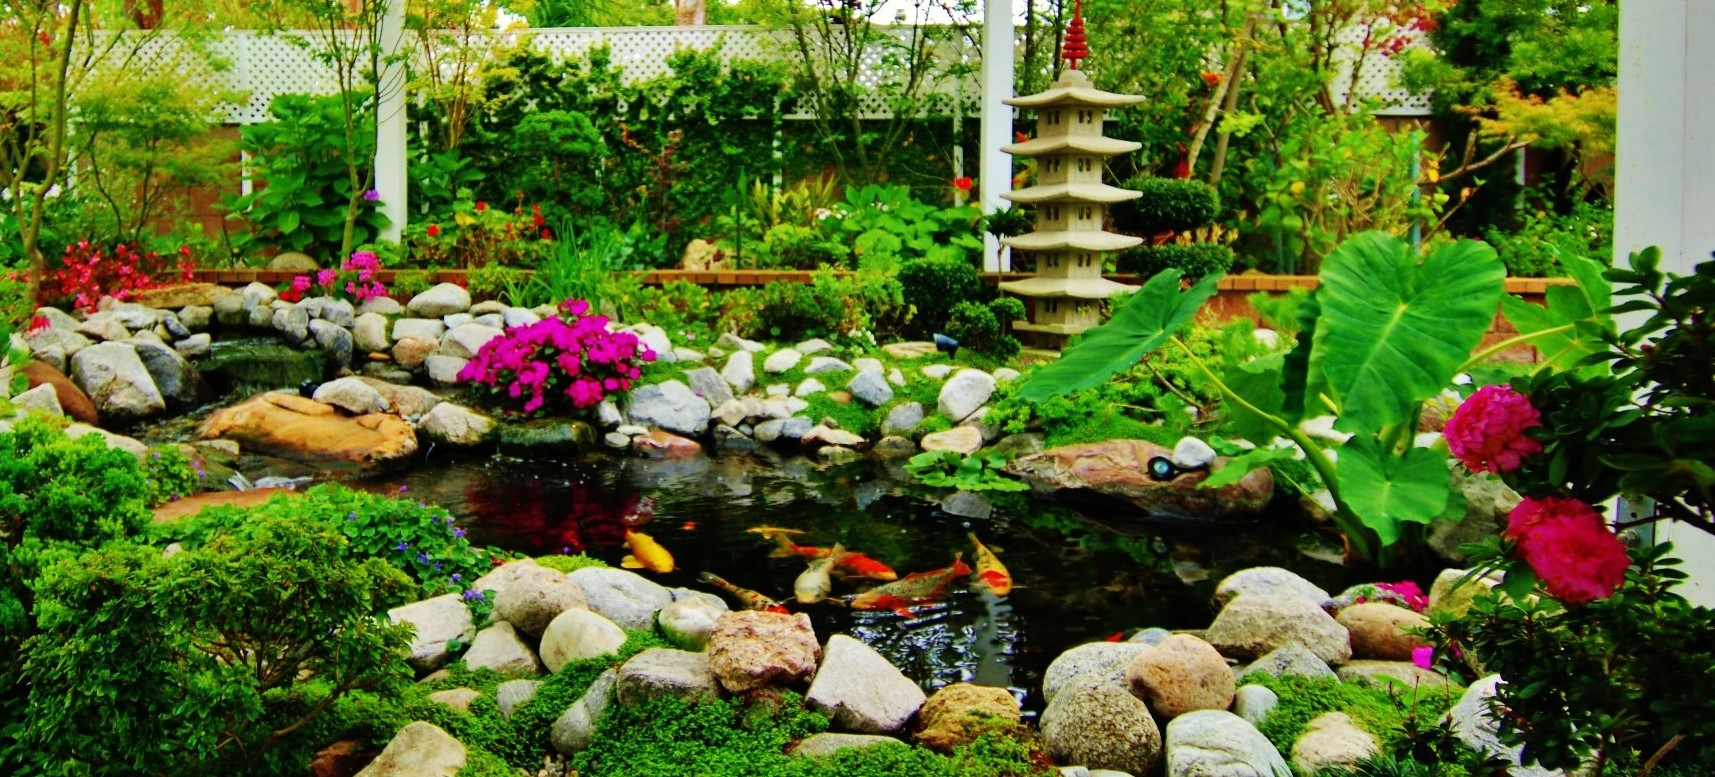 Ponds landscaping manhattan beach enviroscape la for Koi pond maker